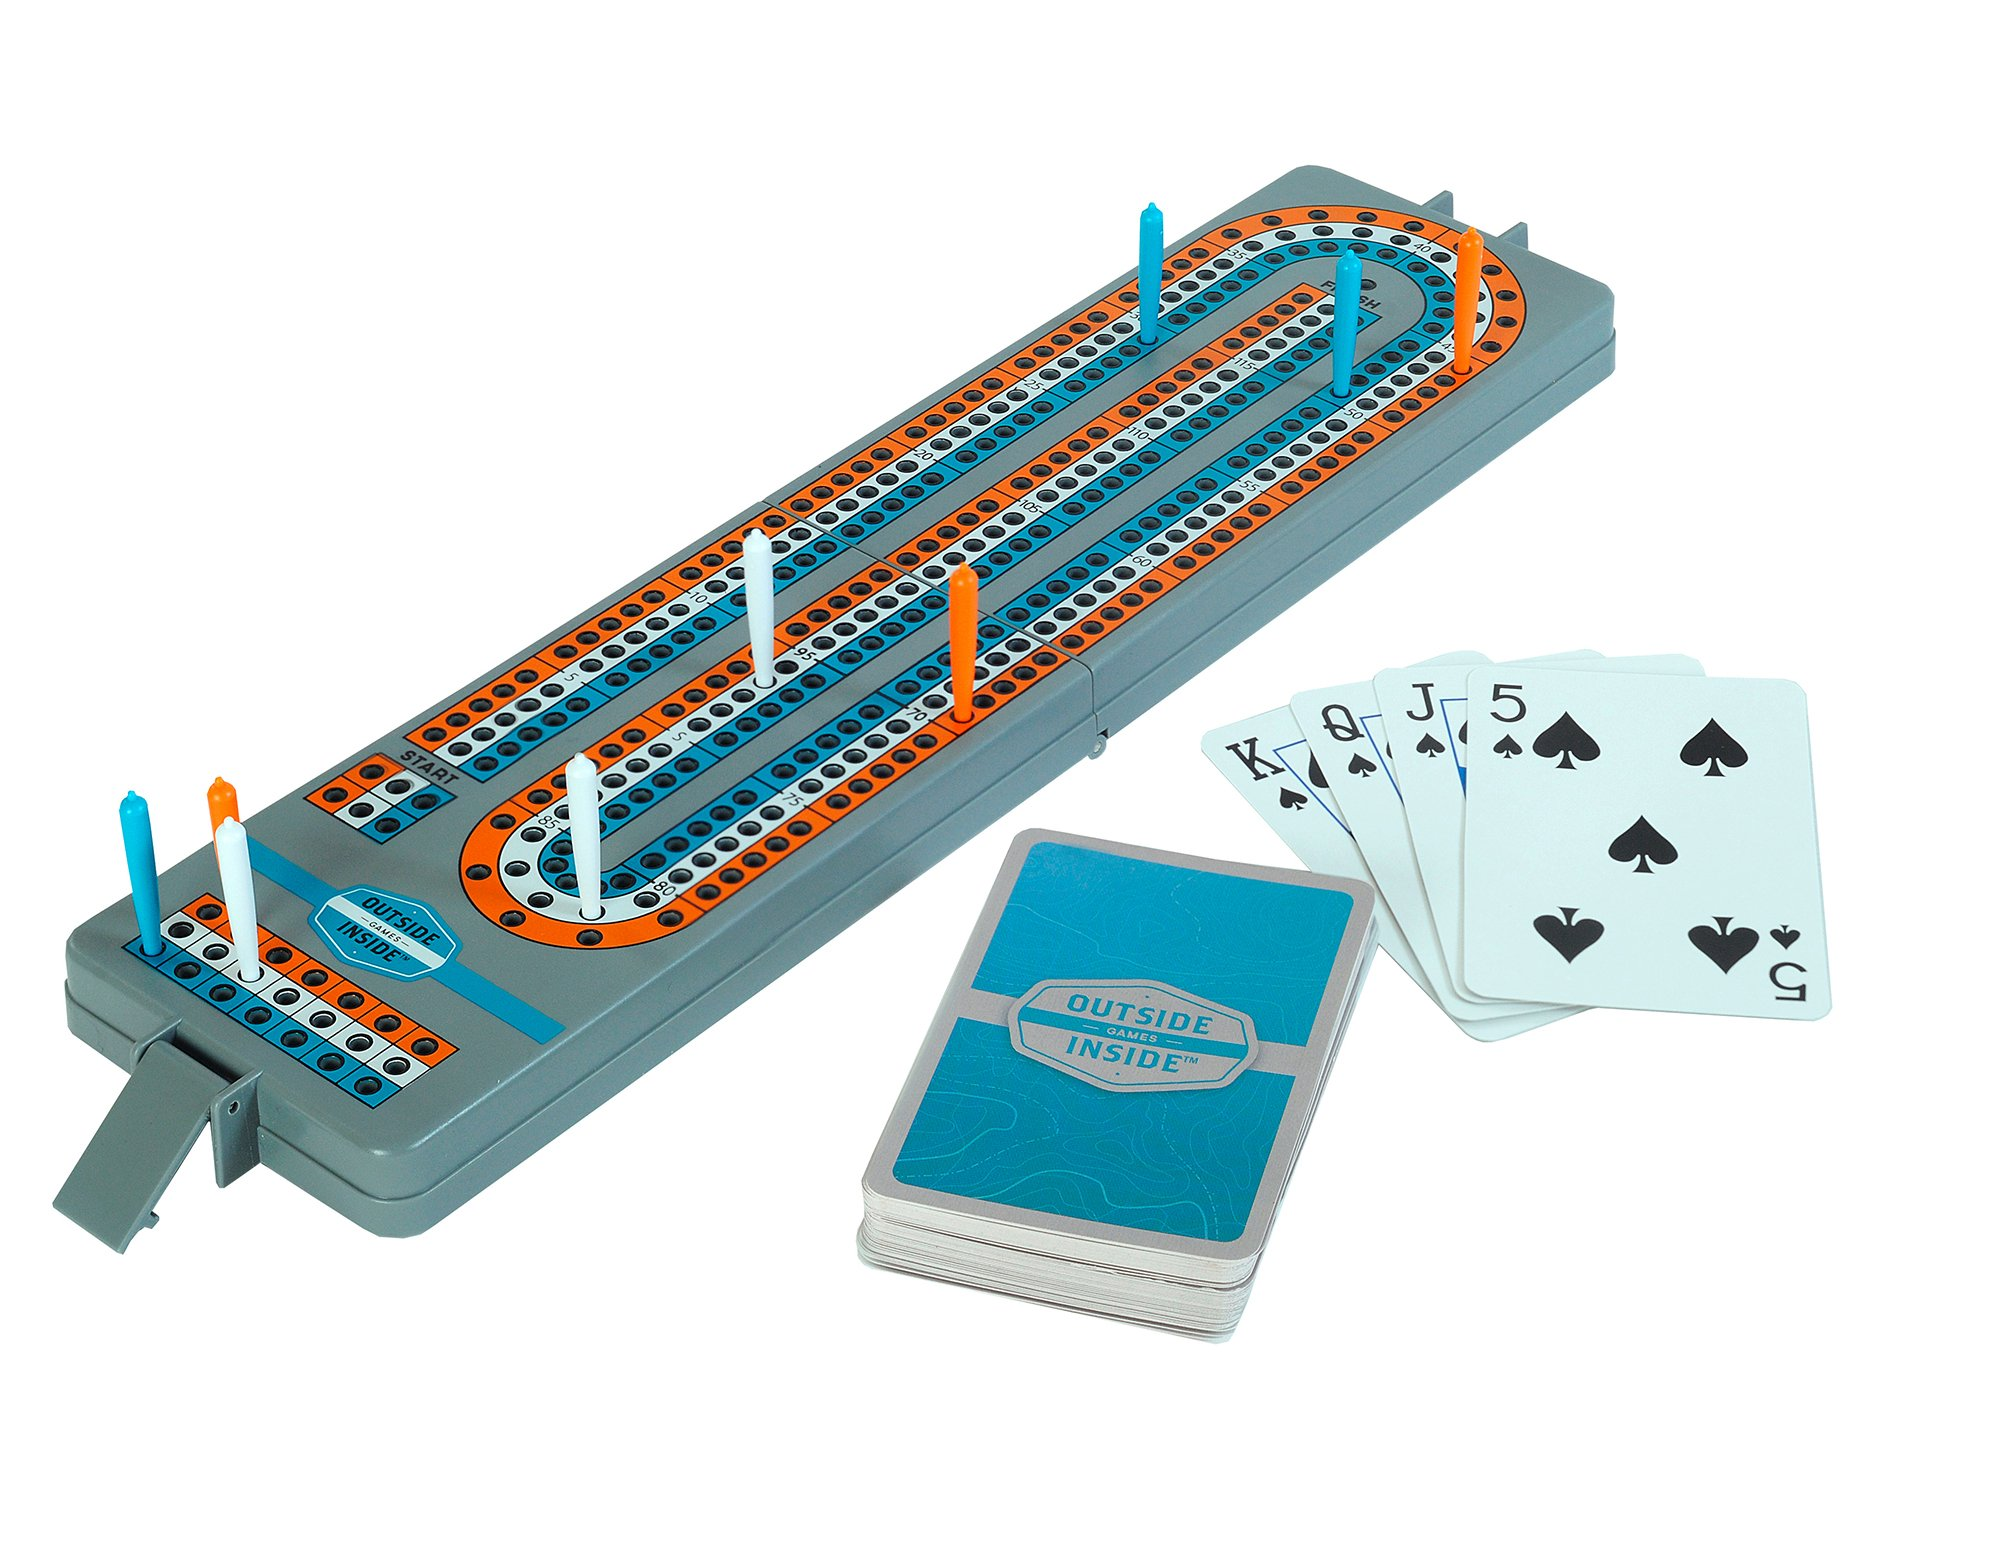 GSI Outdoors Travel Cribbage Board Outside Inside (9 Piece), Gray, 12.75'' by 3.15'' by .75'' (Open)